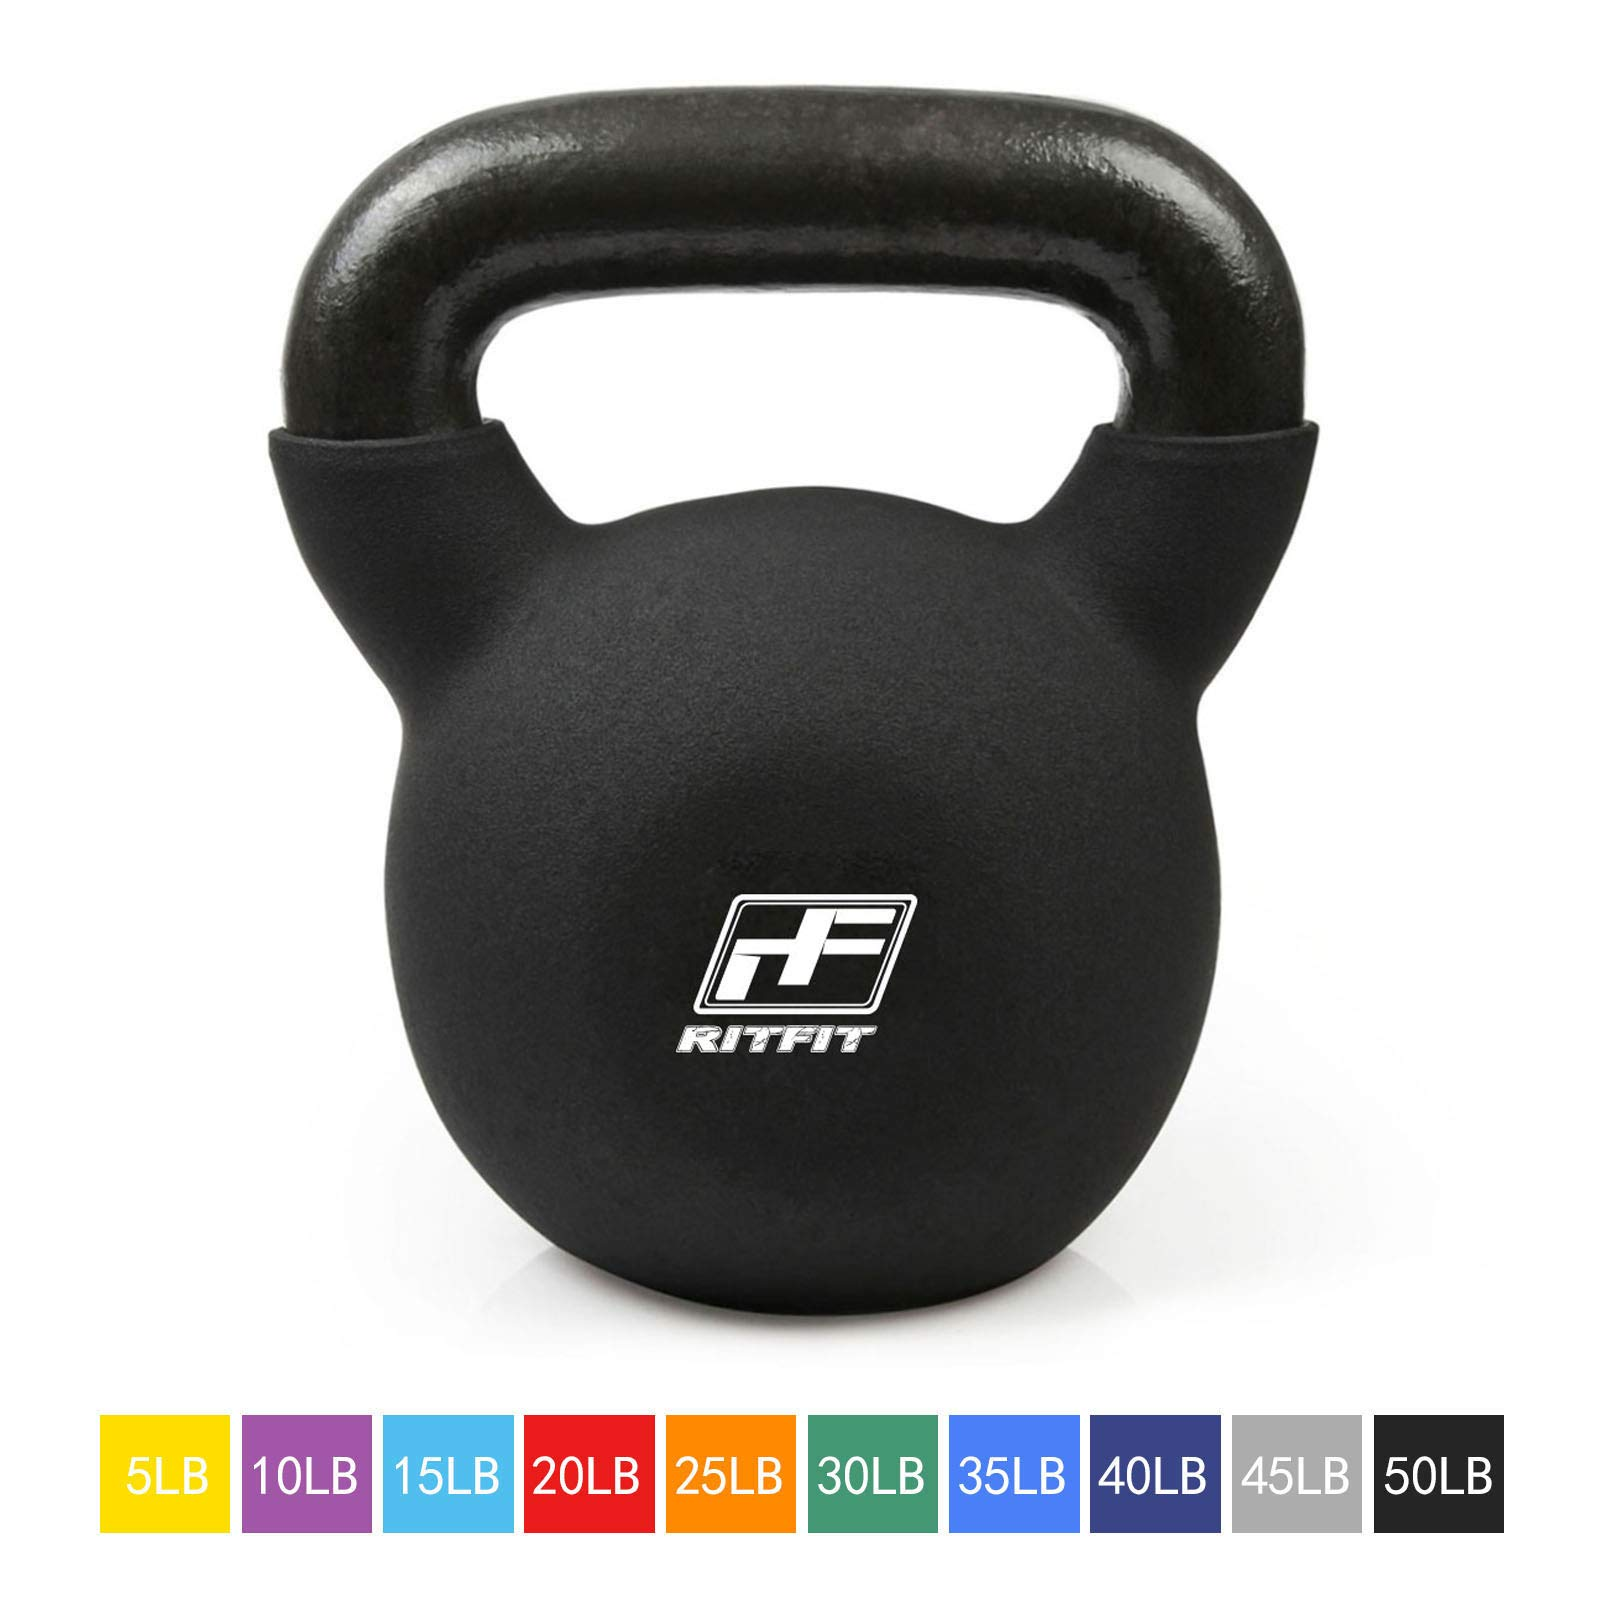 RitFit Neoprene Coated Solid Cast Iron Kettlebell - Great for Full Body Workout, Cross-Training, Weight Loss & Strength Training (5/10/15/20/25/30/35/40/45/50 LB) (50LB(Black))